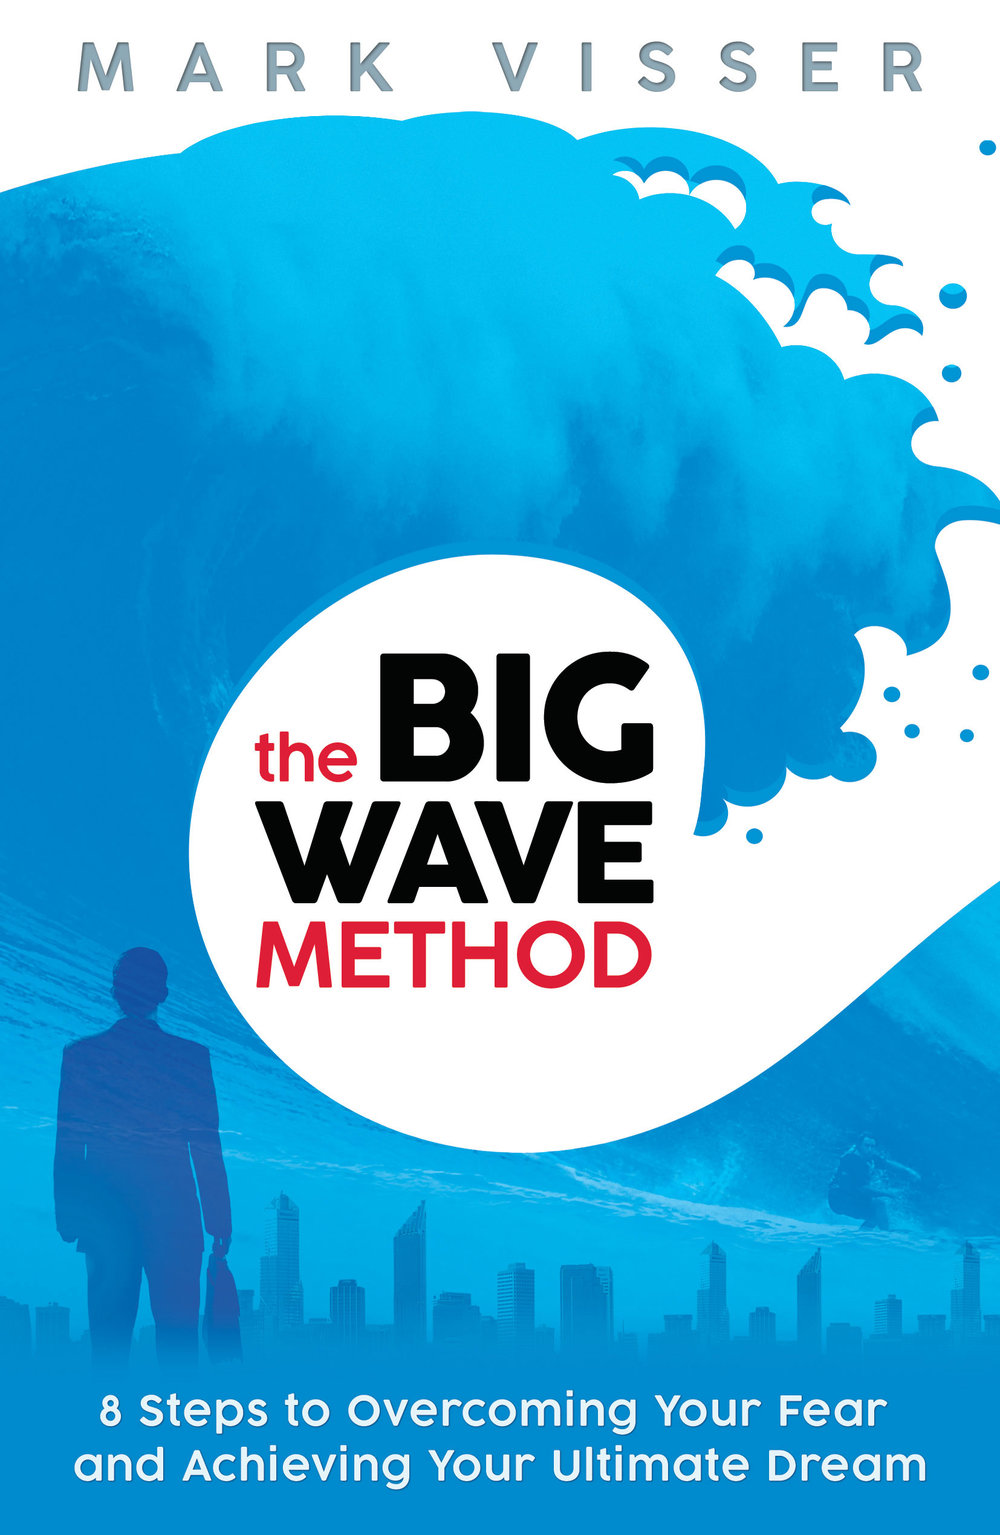 Big-Wave-Method.jpg